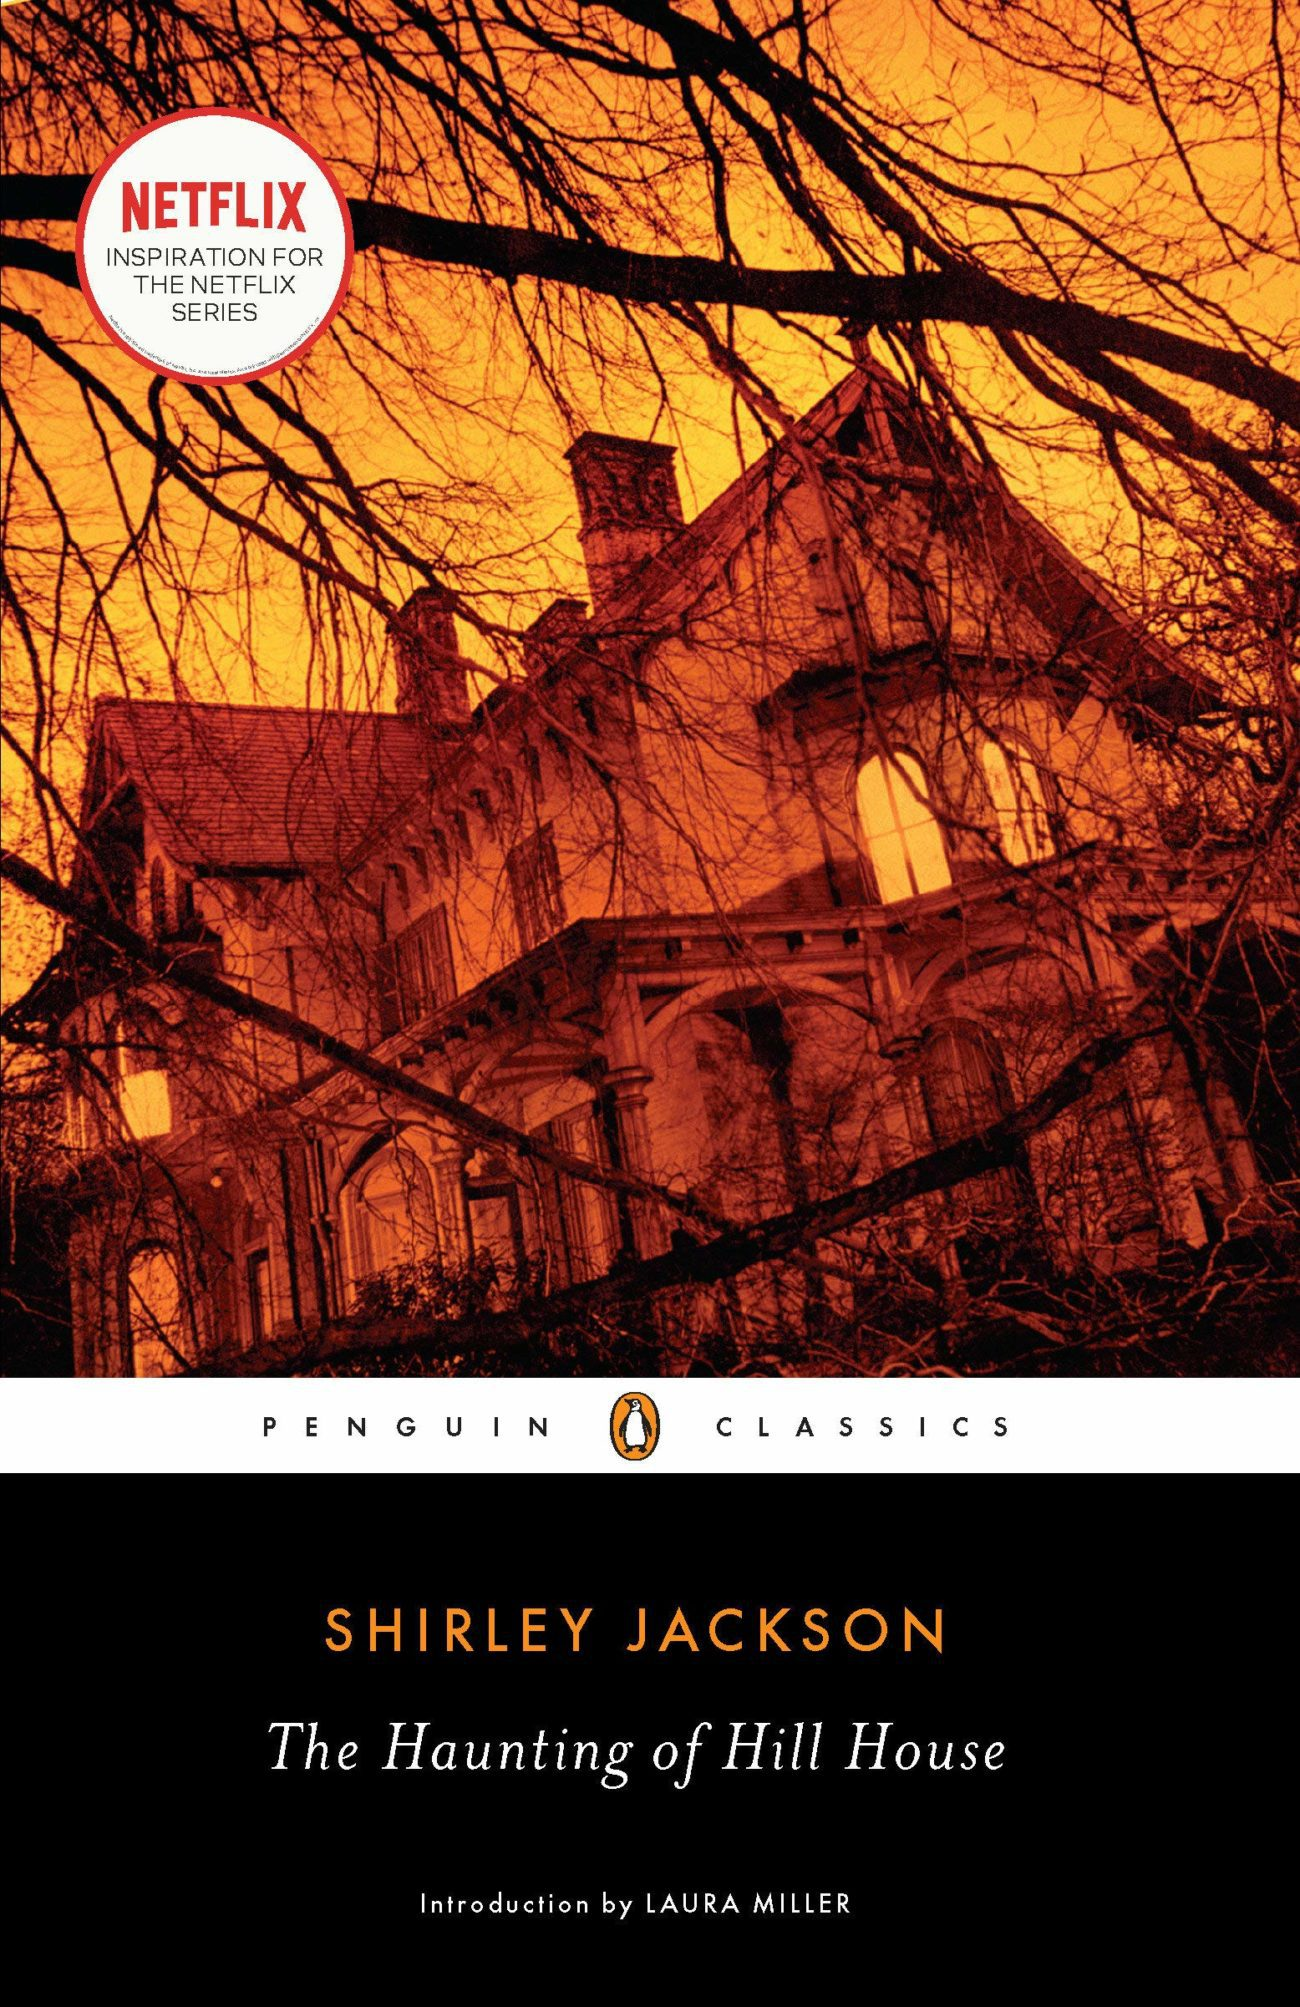 Cover of Penguin Classics edition of The Haunting of Hill House